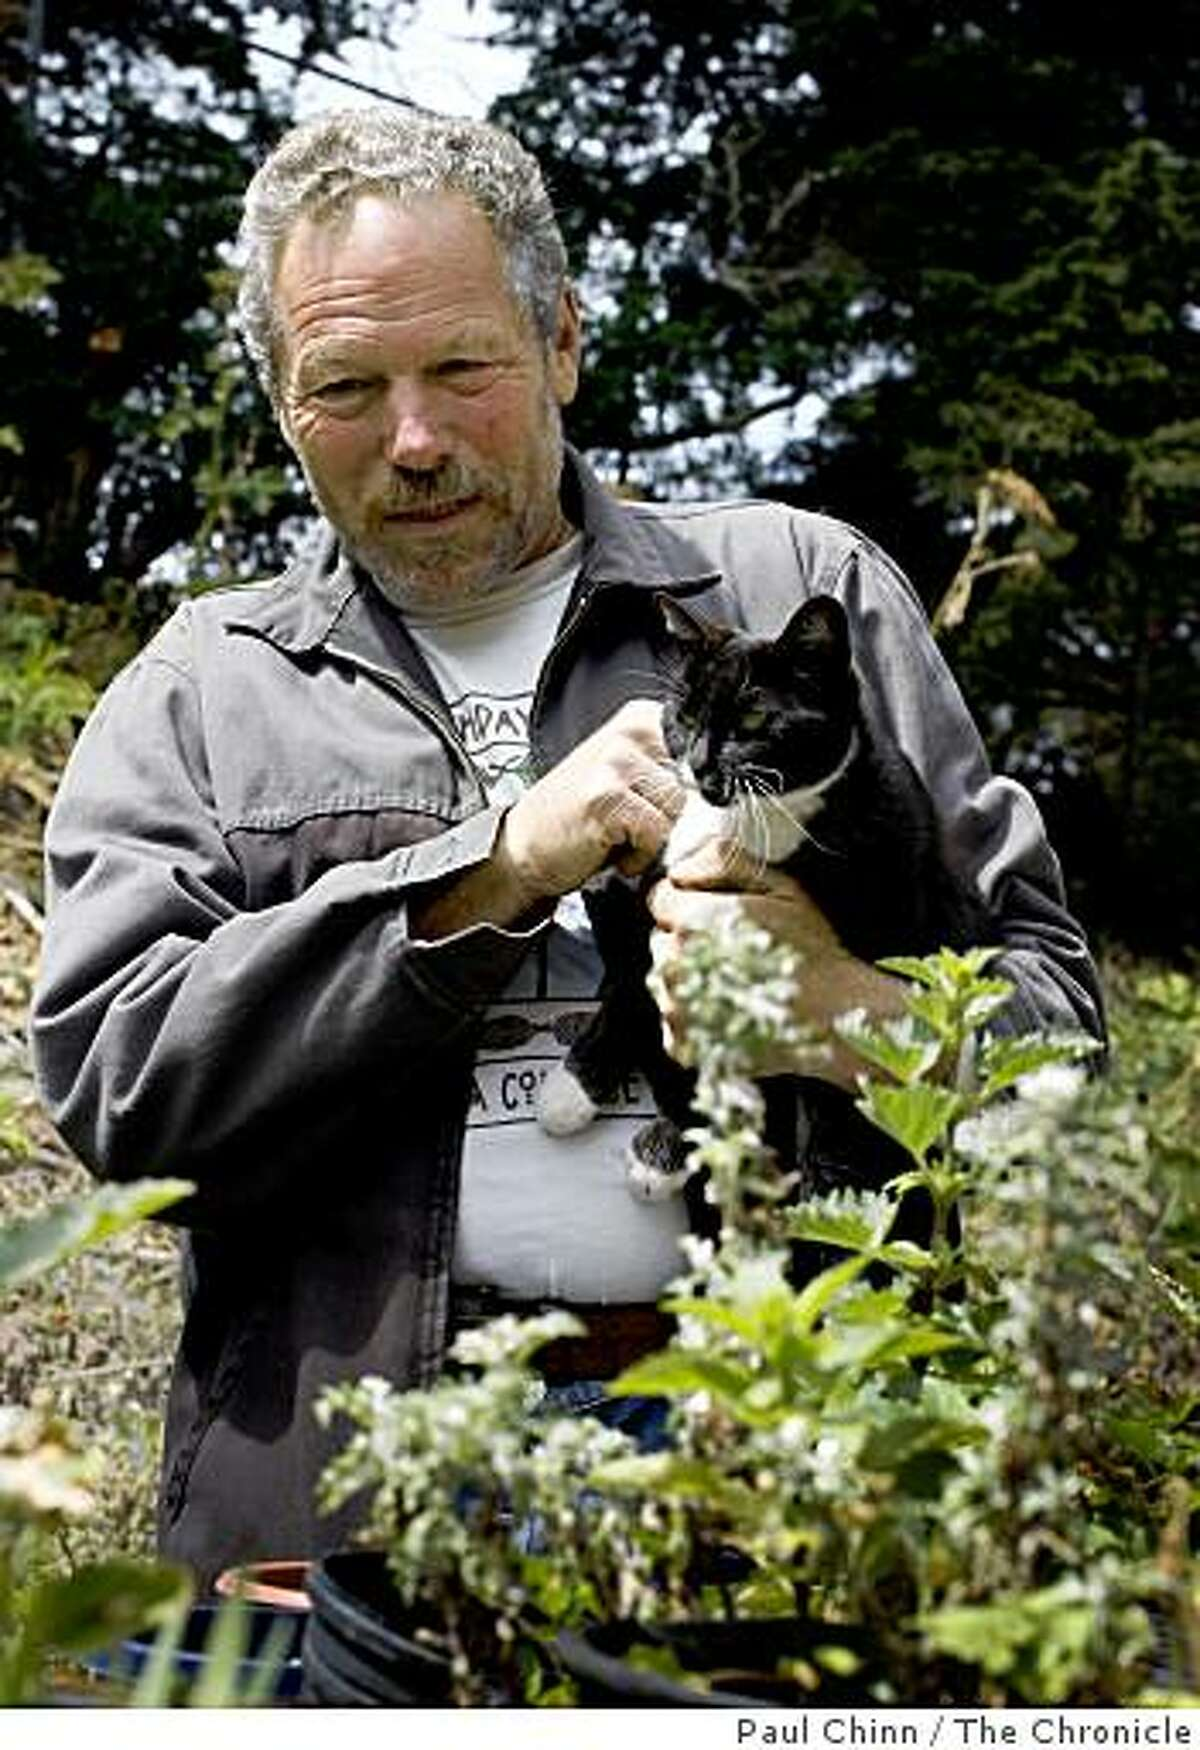 Greg Gaar looks at several varieties of native plants with Sylvia, one of two cats that reside near Gaar's Native Plant Nursery, near Kezar Stadium in San Francisco, Calif., on Thursday, July 9, 2009.